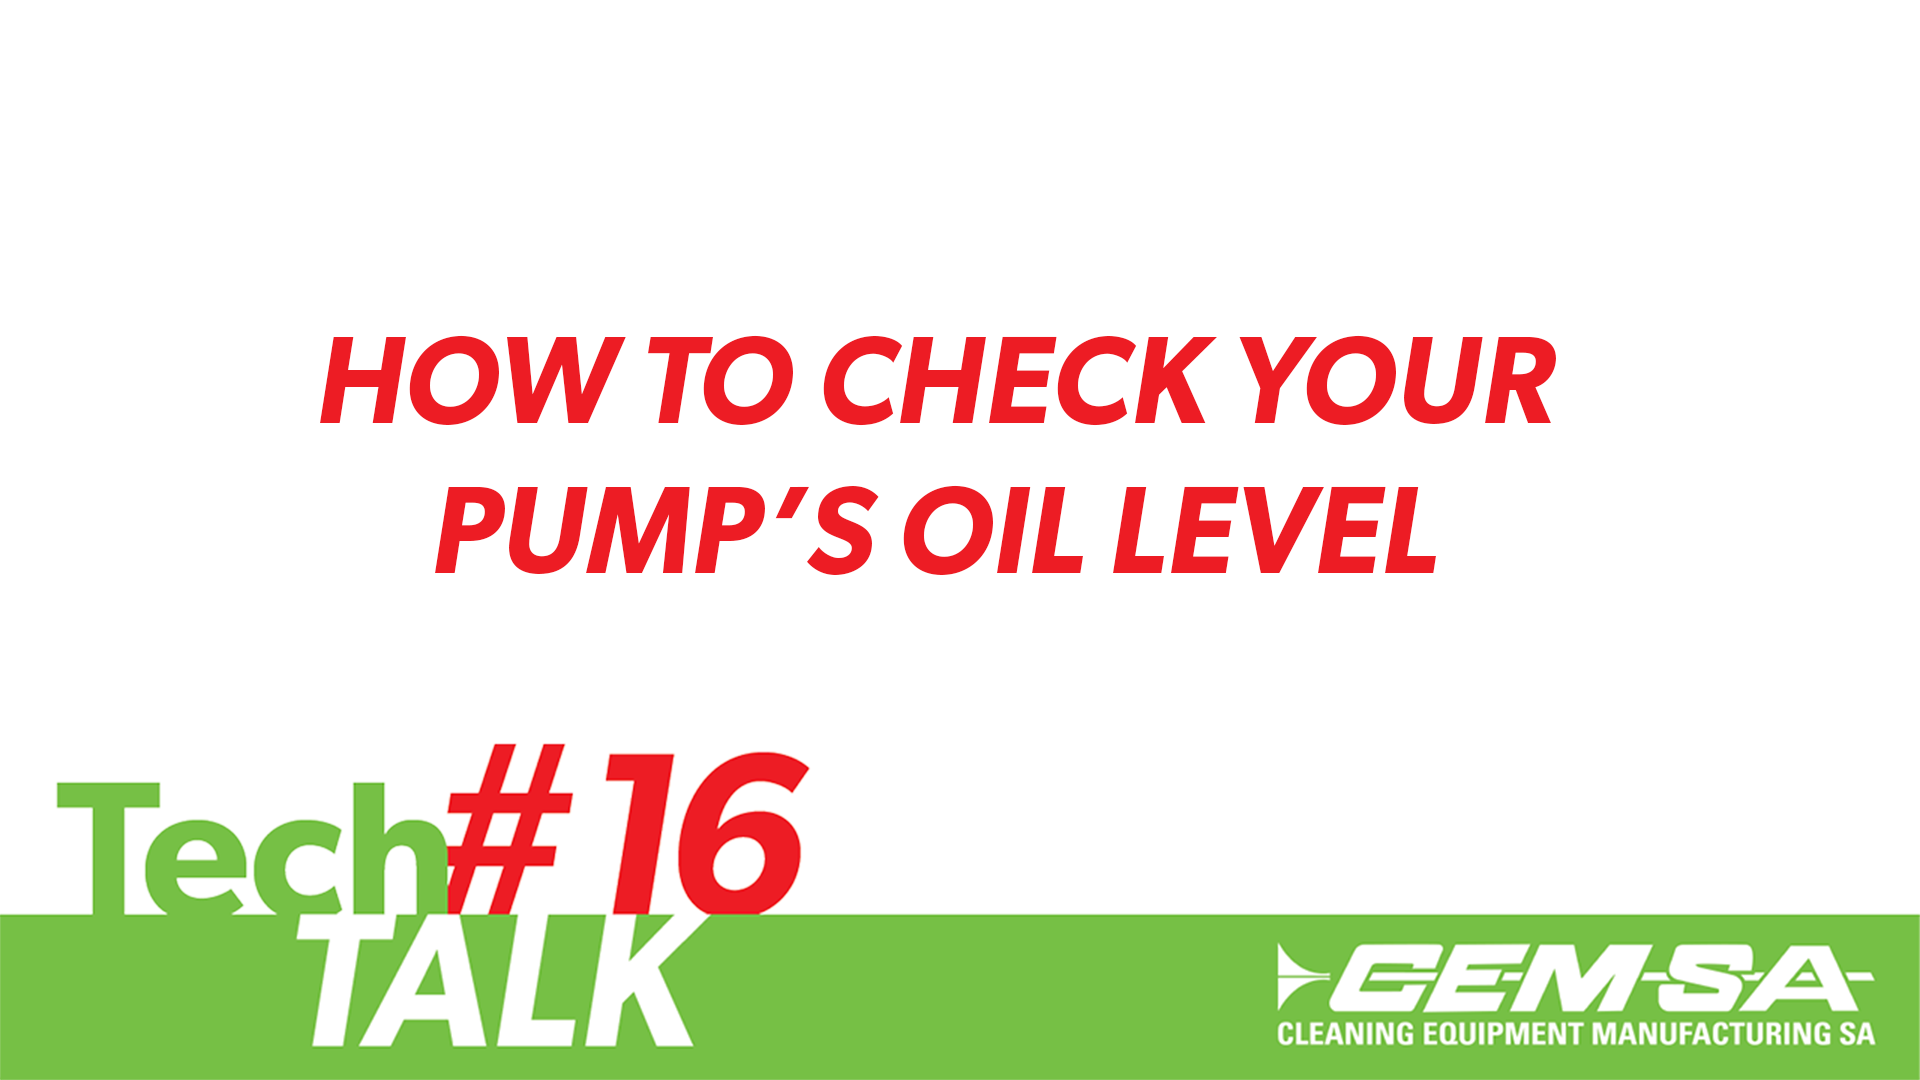 TechTalk #16- How To Check Your Pump's Oil Level